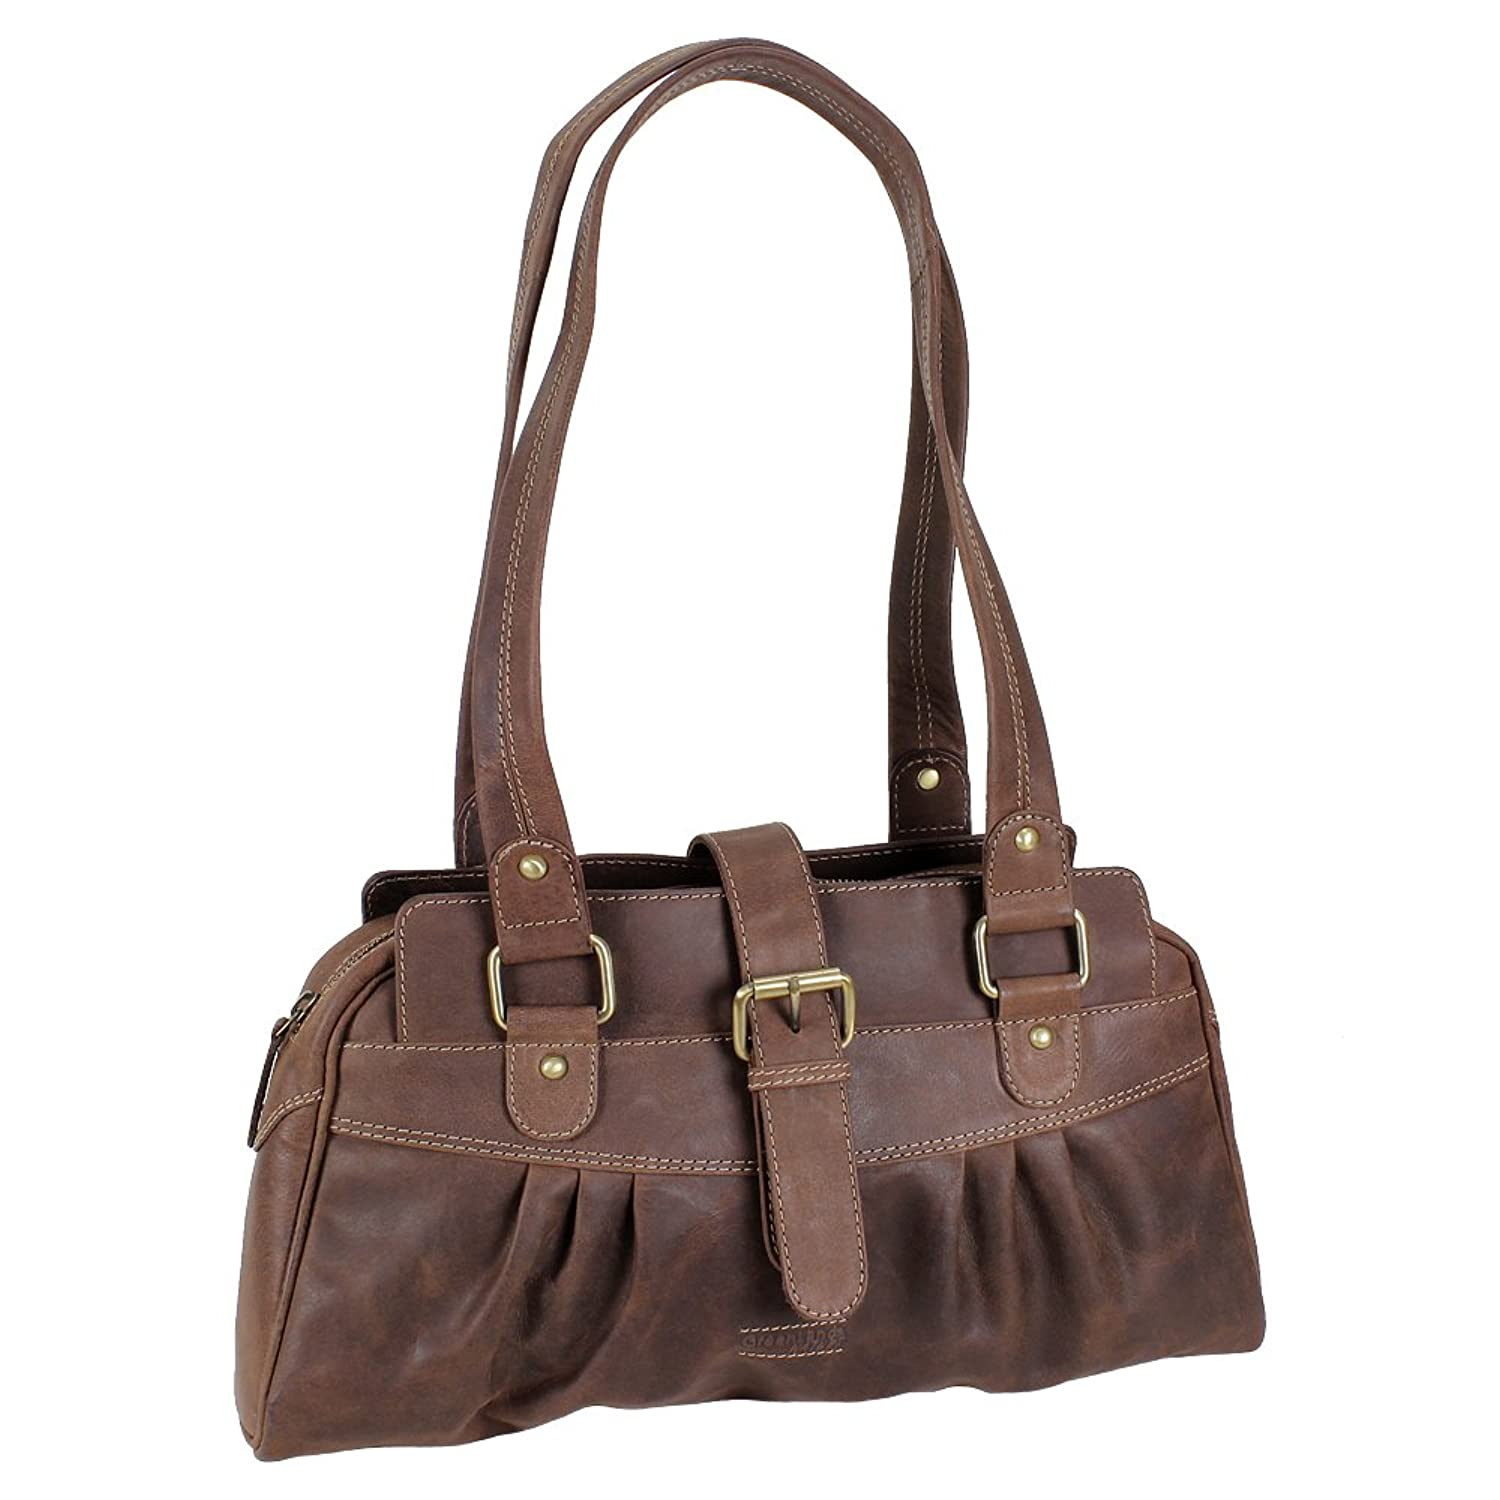 Greenland nature shoulder bag casual bag Brown